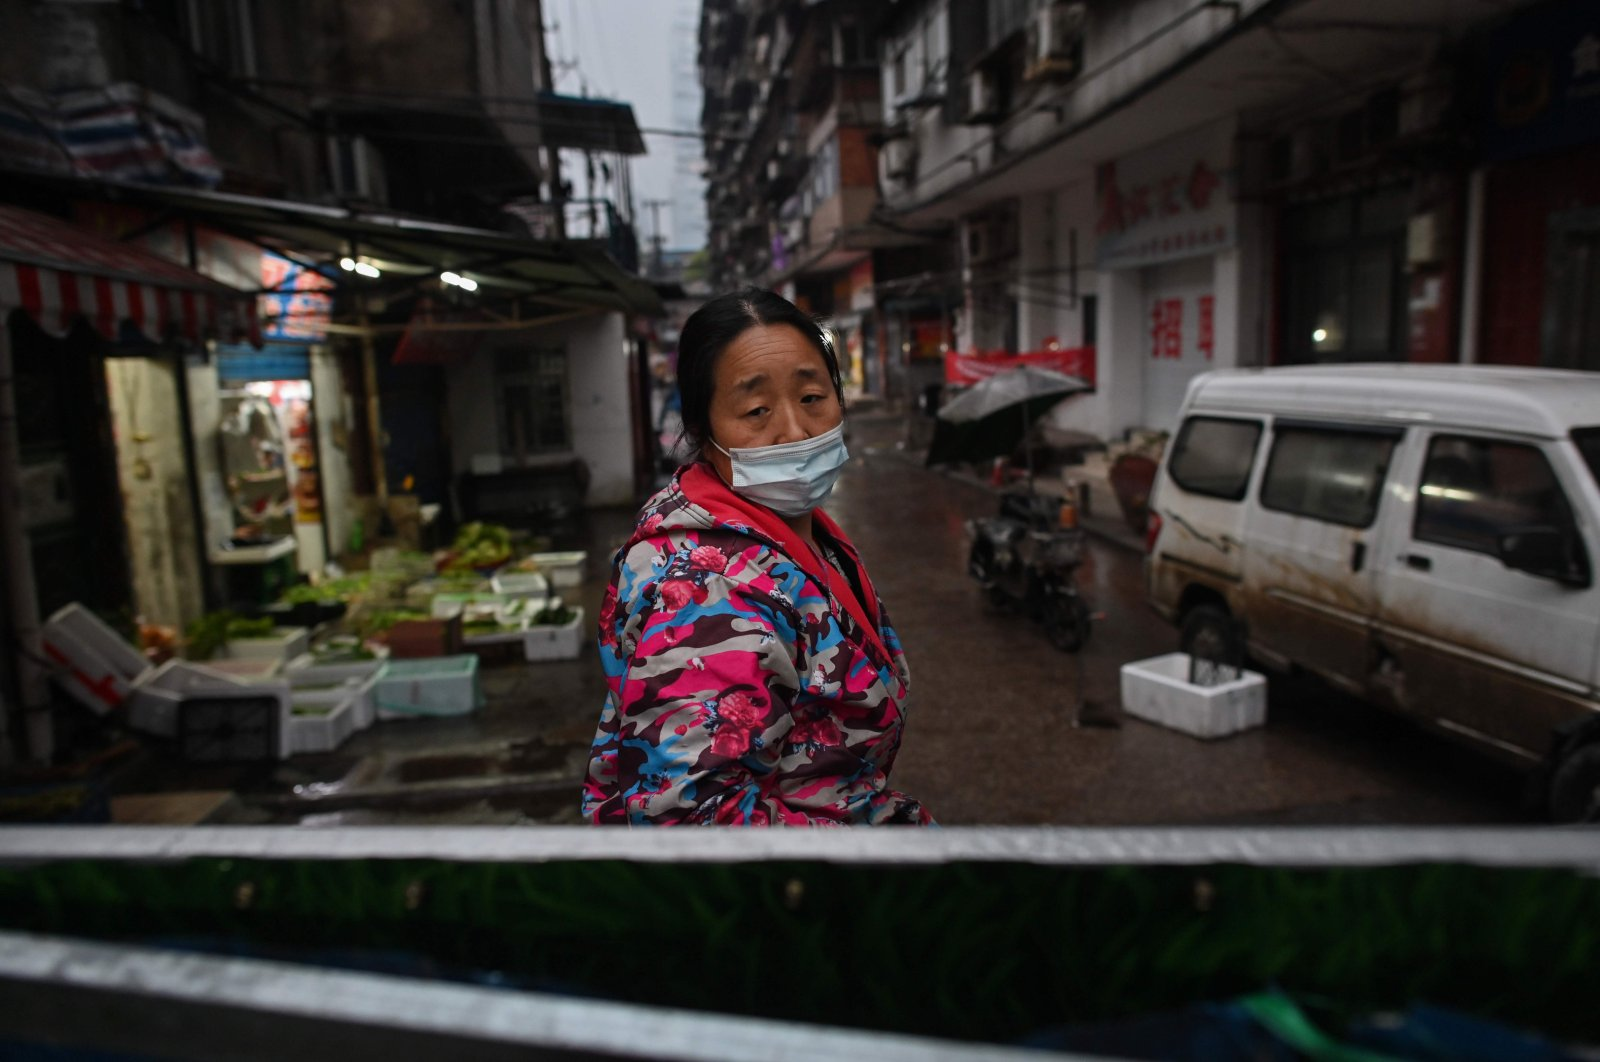 A woman, wearing a face mask as a preventive measure against the spread of the COVID-19 stands at an access to a neighborhood closed off by barriers in Wuhan, China's central Hubei province, Monday, April 20, 2020. (AFP Photo)